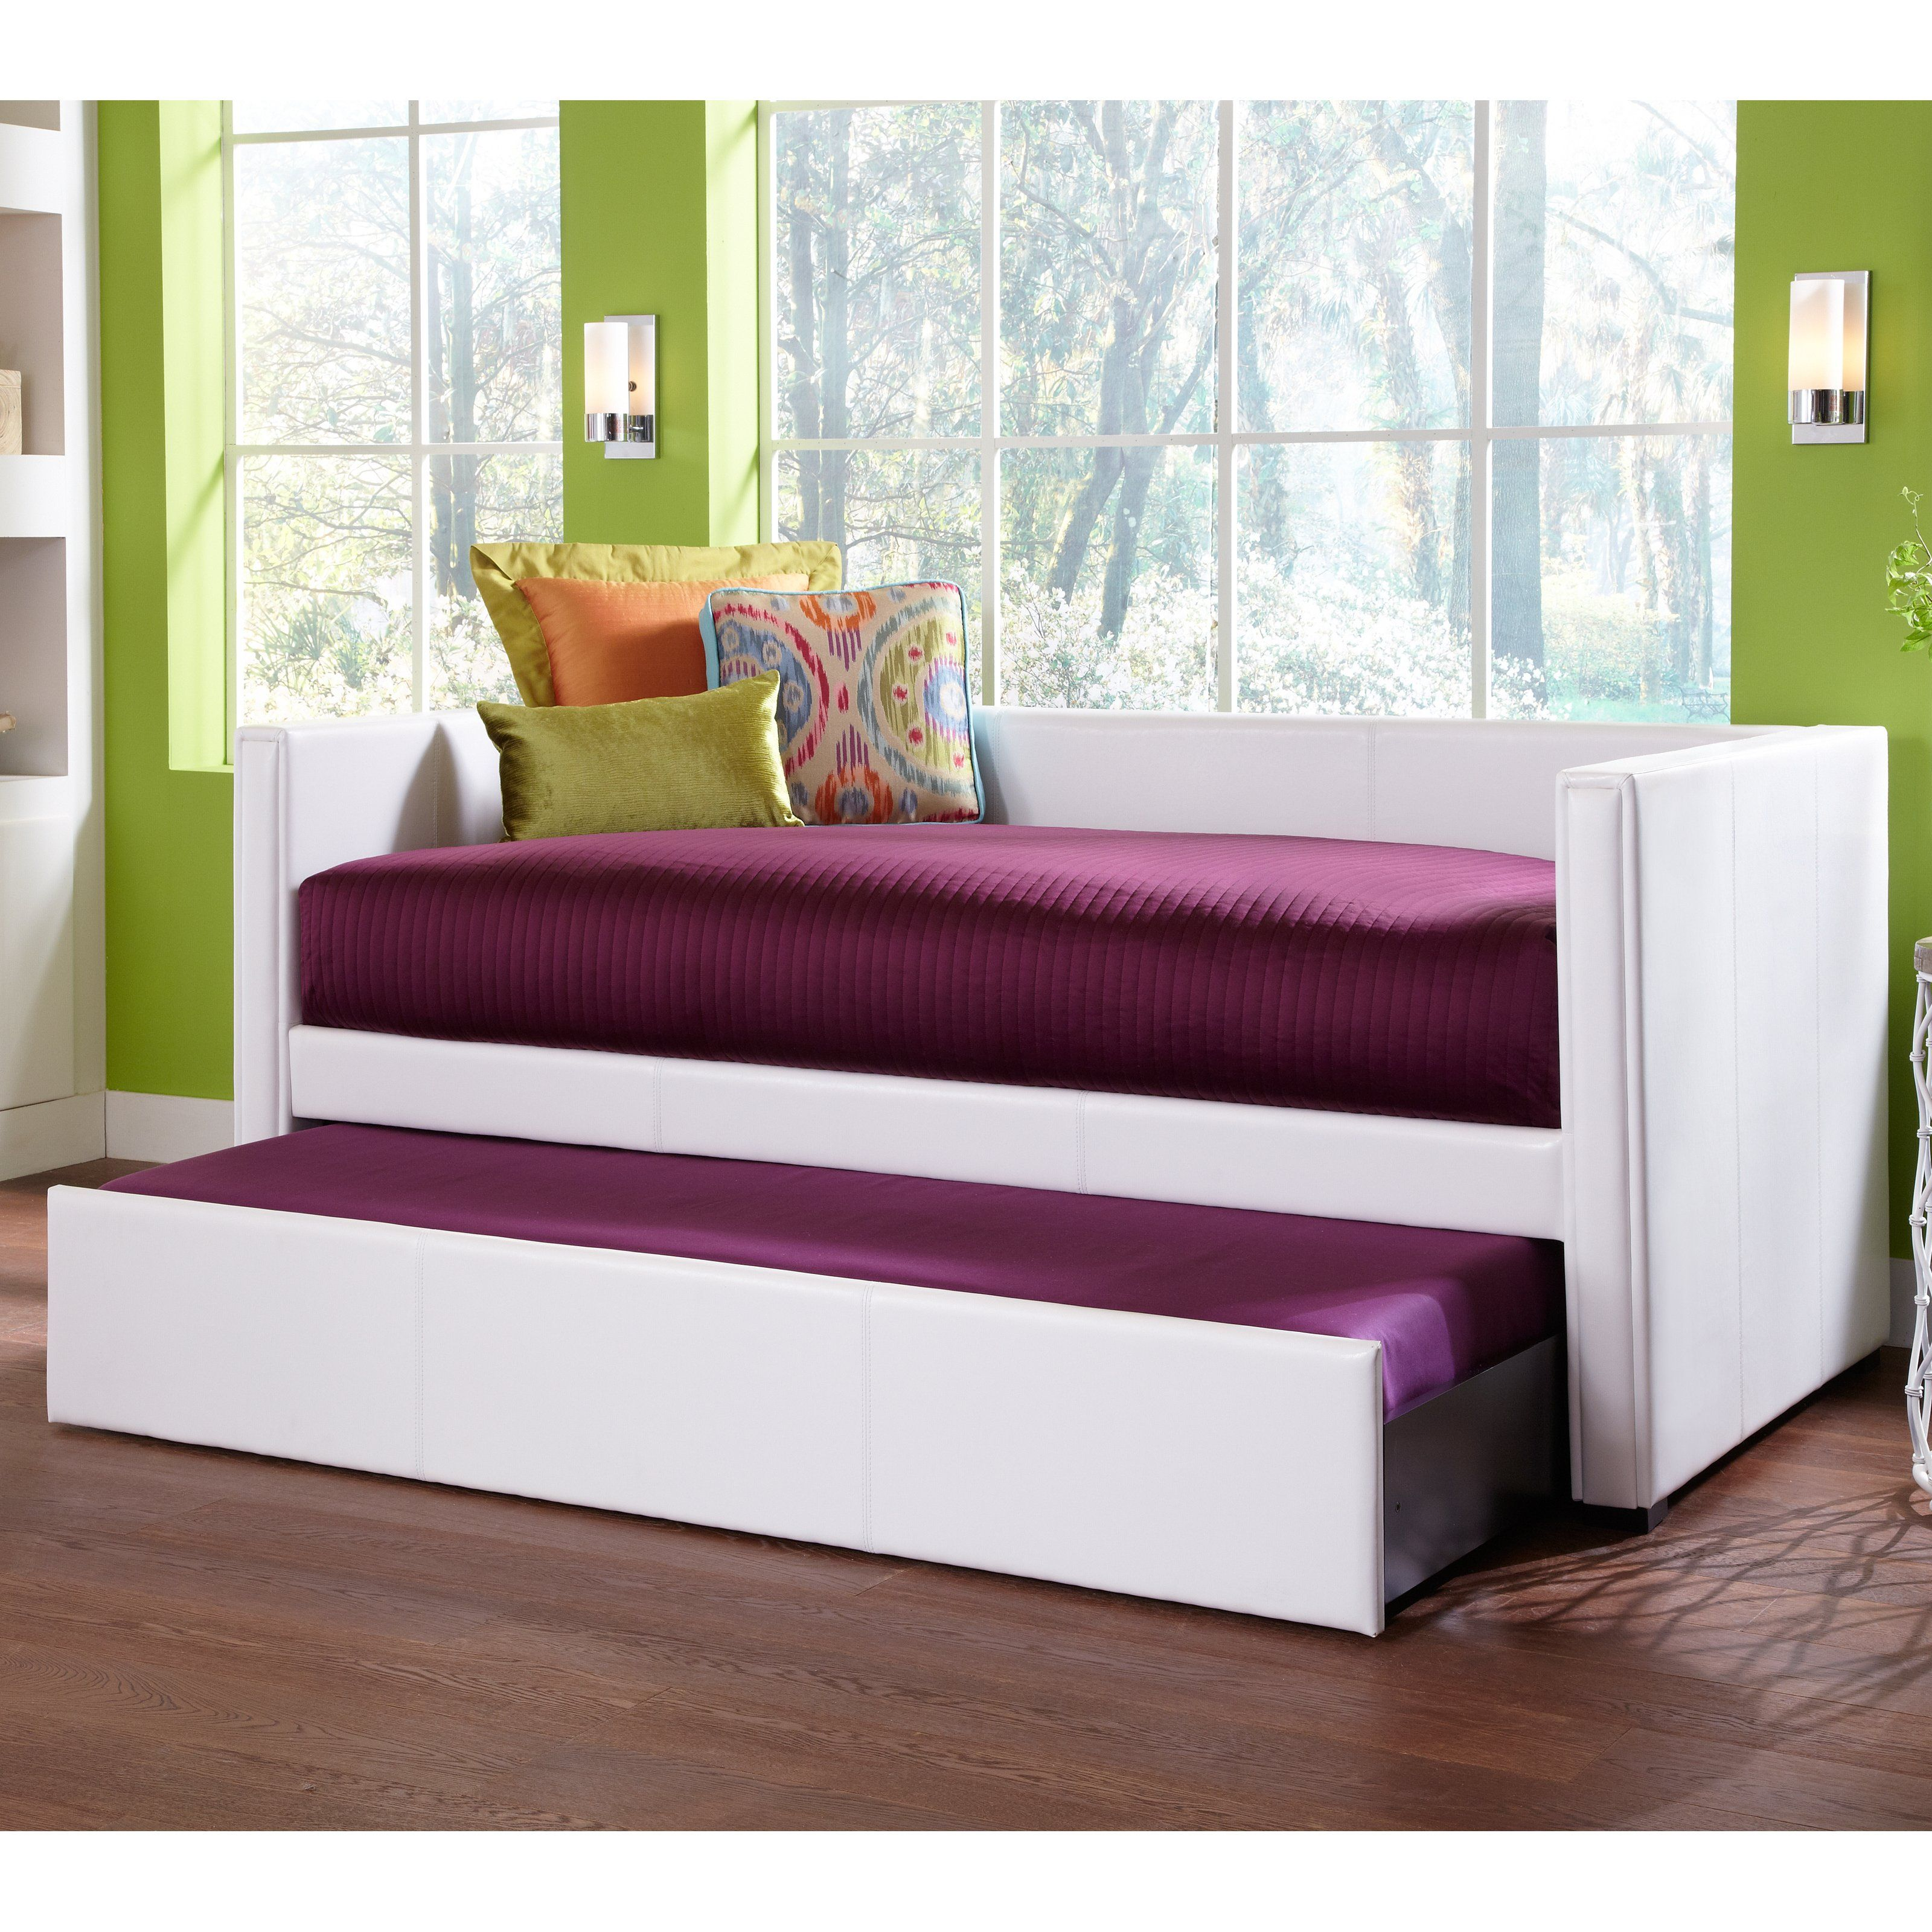 Euro Upholstered Daybed White